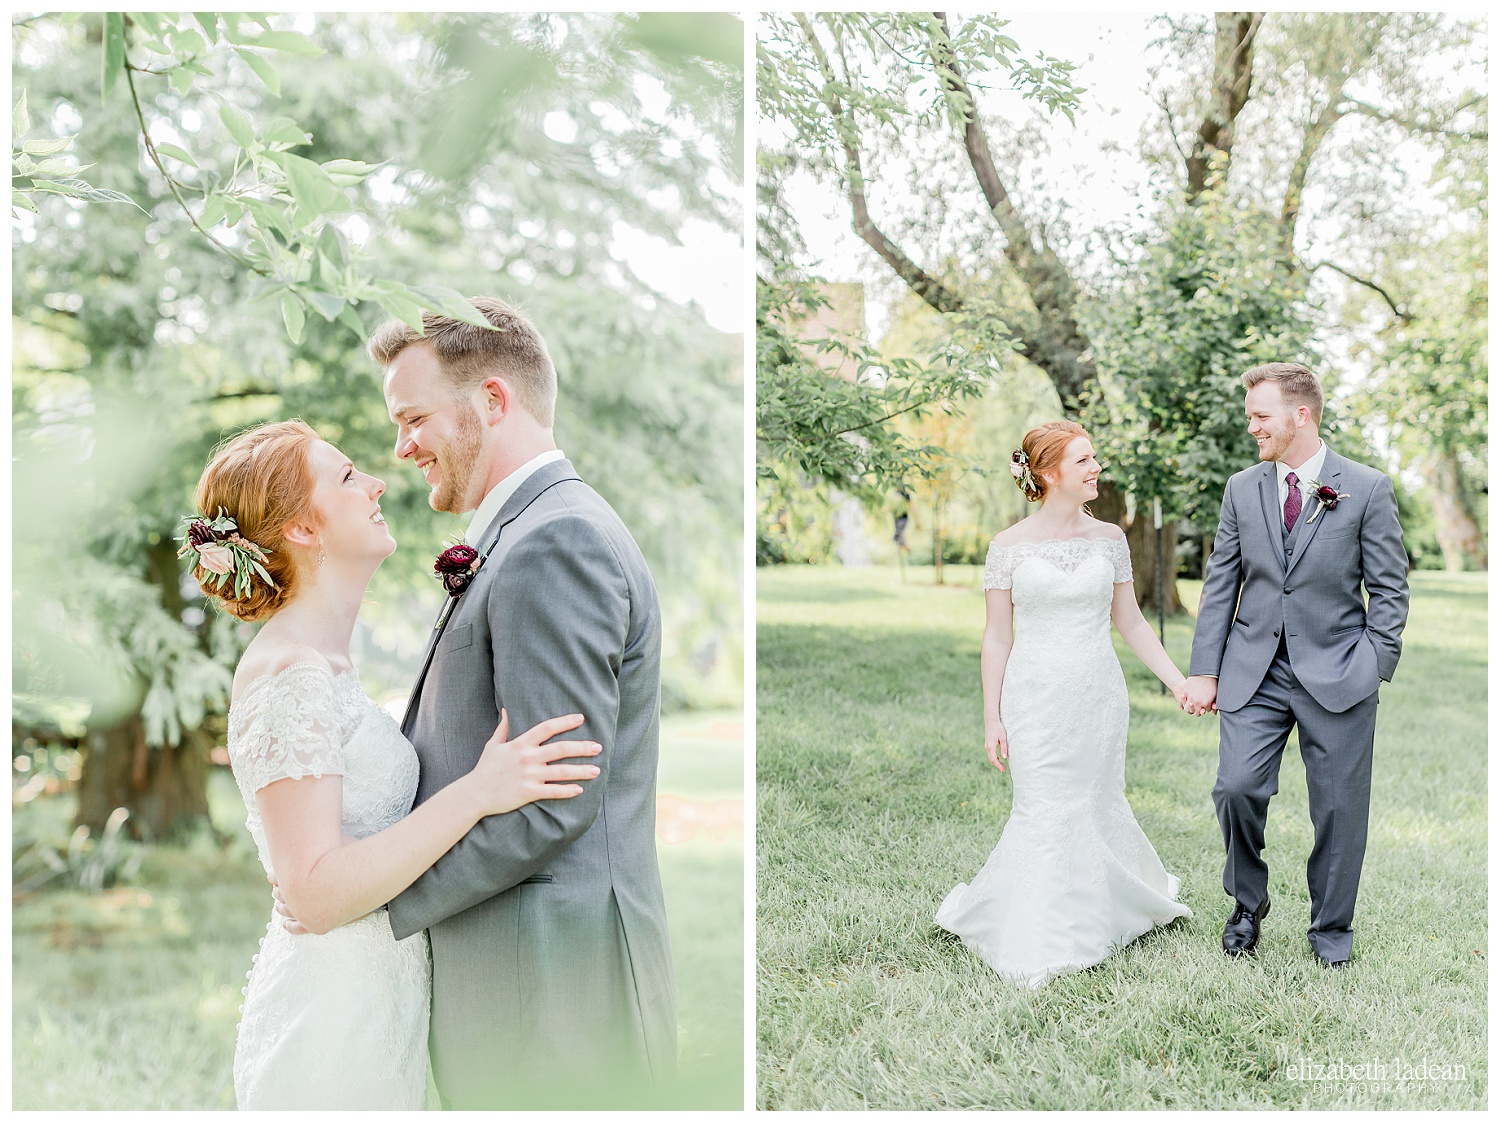 Burgundy-and-Gold-Wedding-Kansas-City-The-Legacy-at-Green-Hills-M+T0902-Elizabeth-Ladean-Photography-photo-_2272.jpg